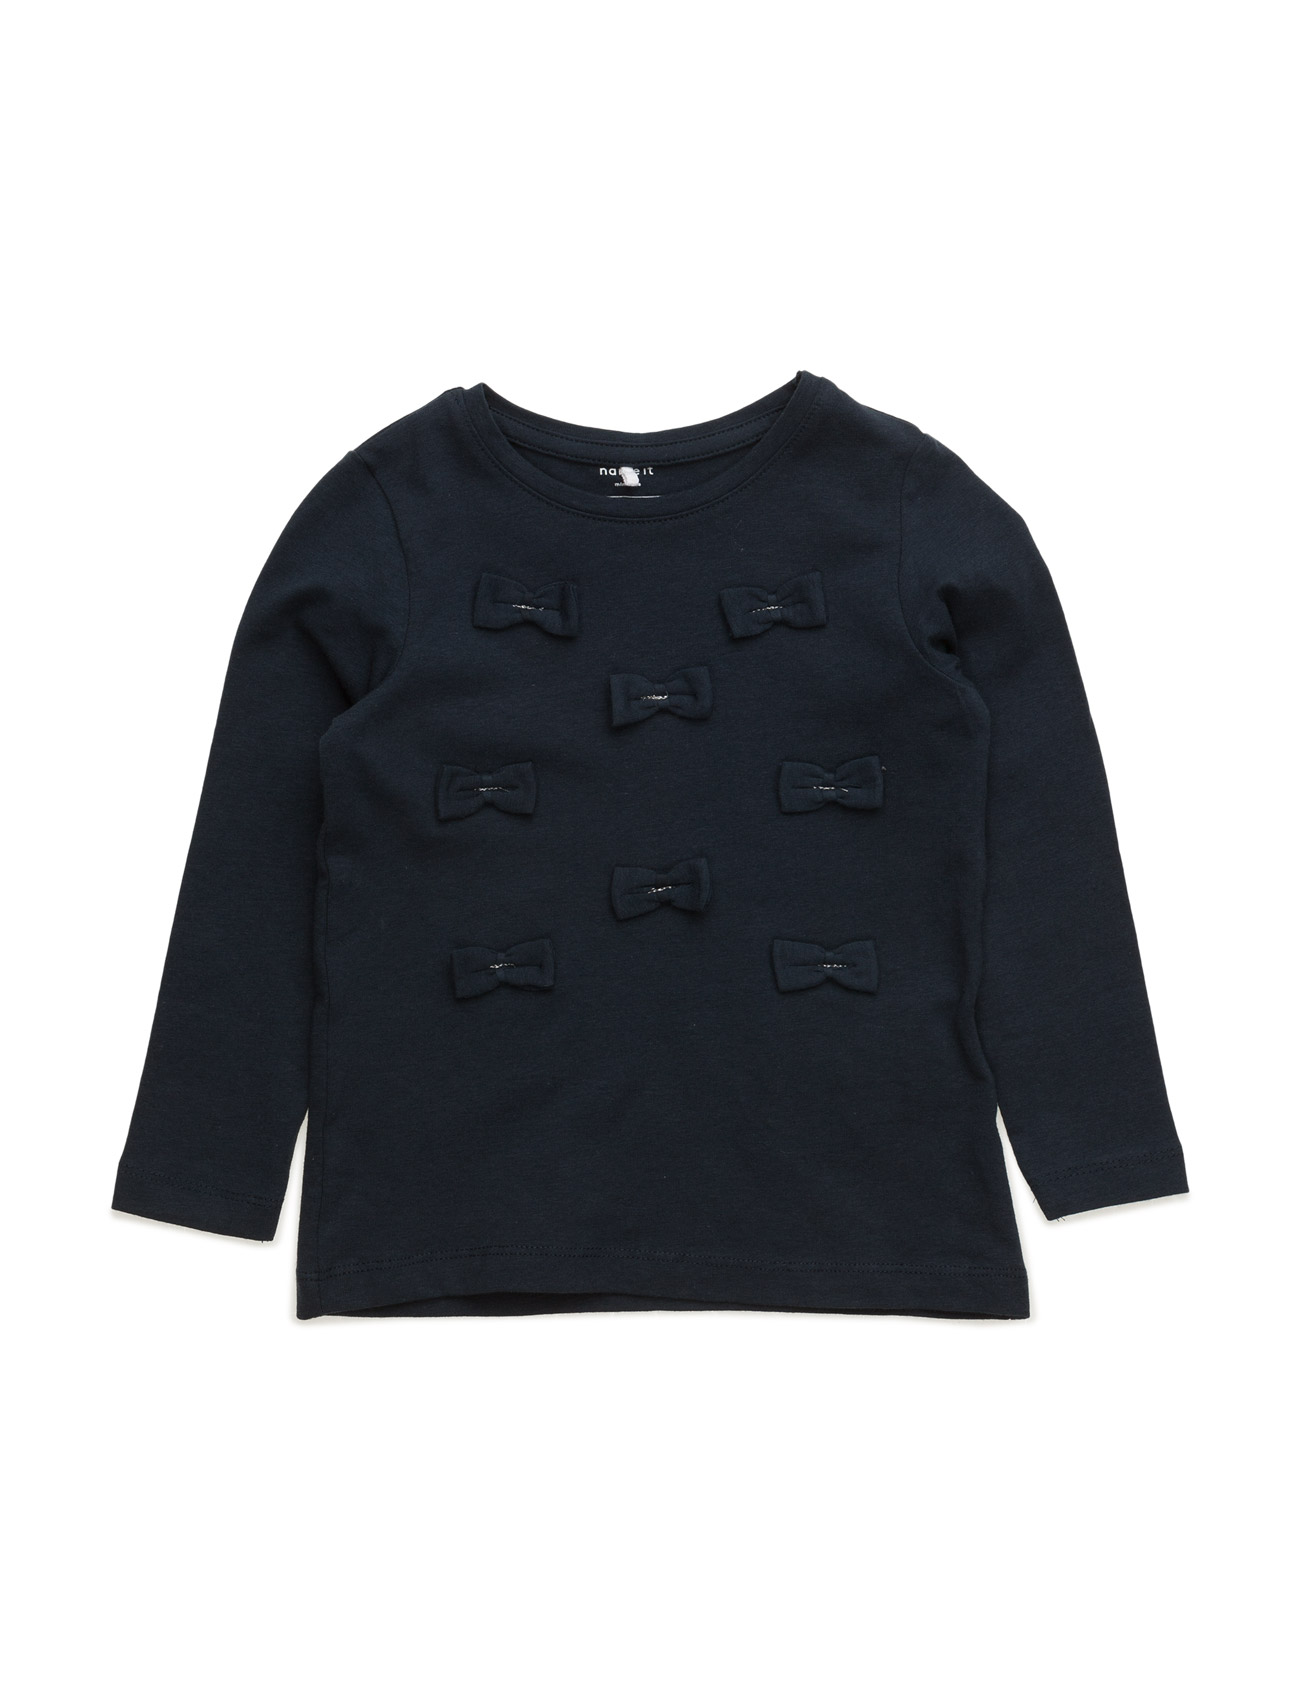 Nitbamilla Ls Top Mz name it Langærmede t-shirts til Børn i Dress Blues